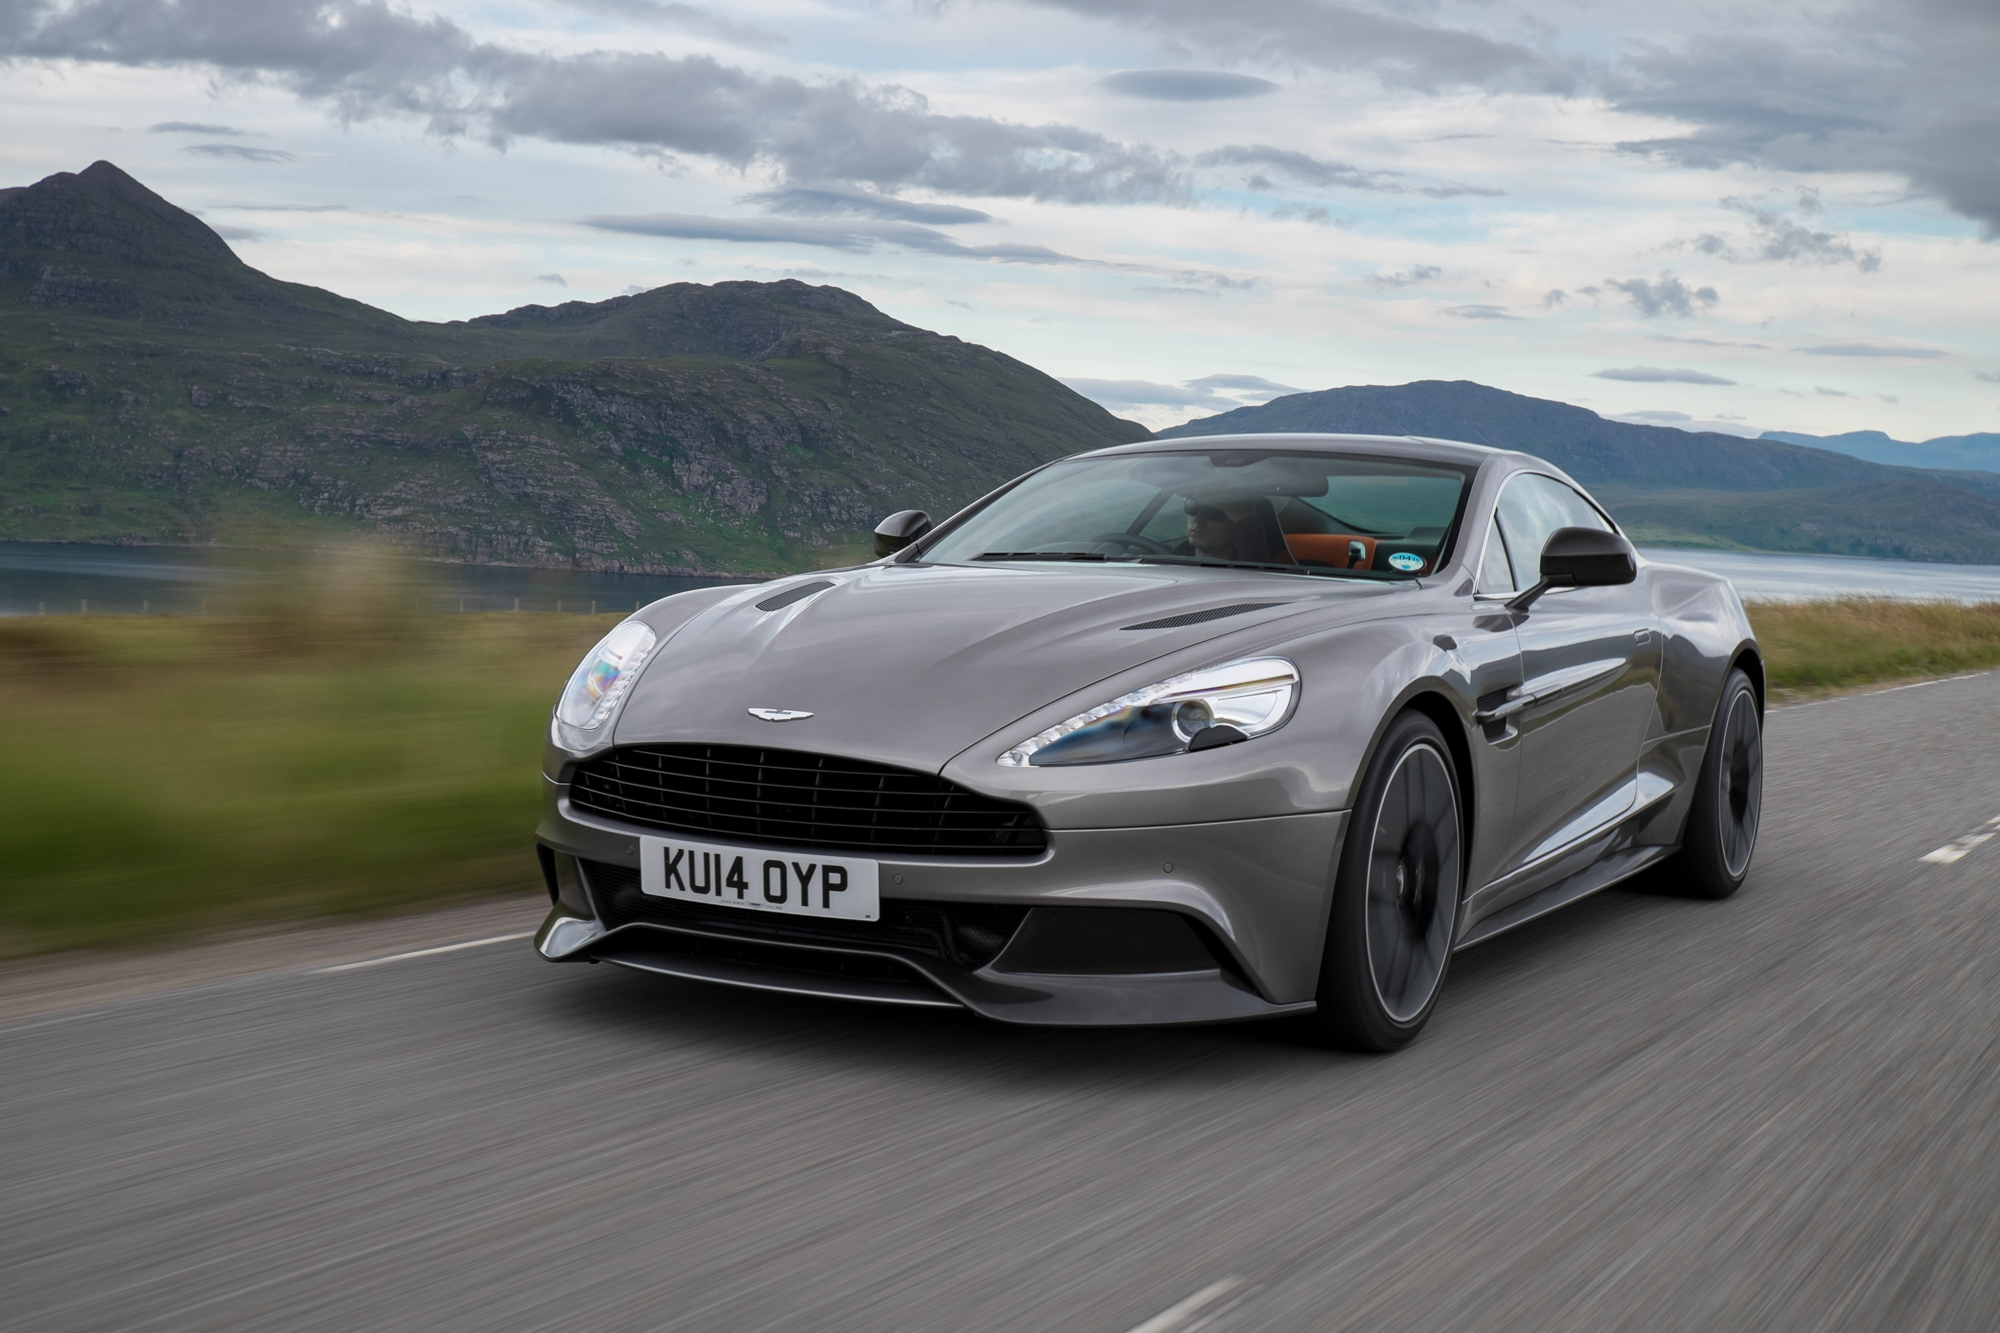 2015 Aston Martin Vanquish Review, Ratings, Specs, Prices ...